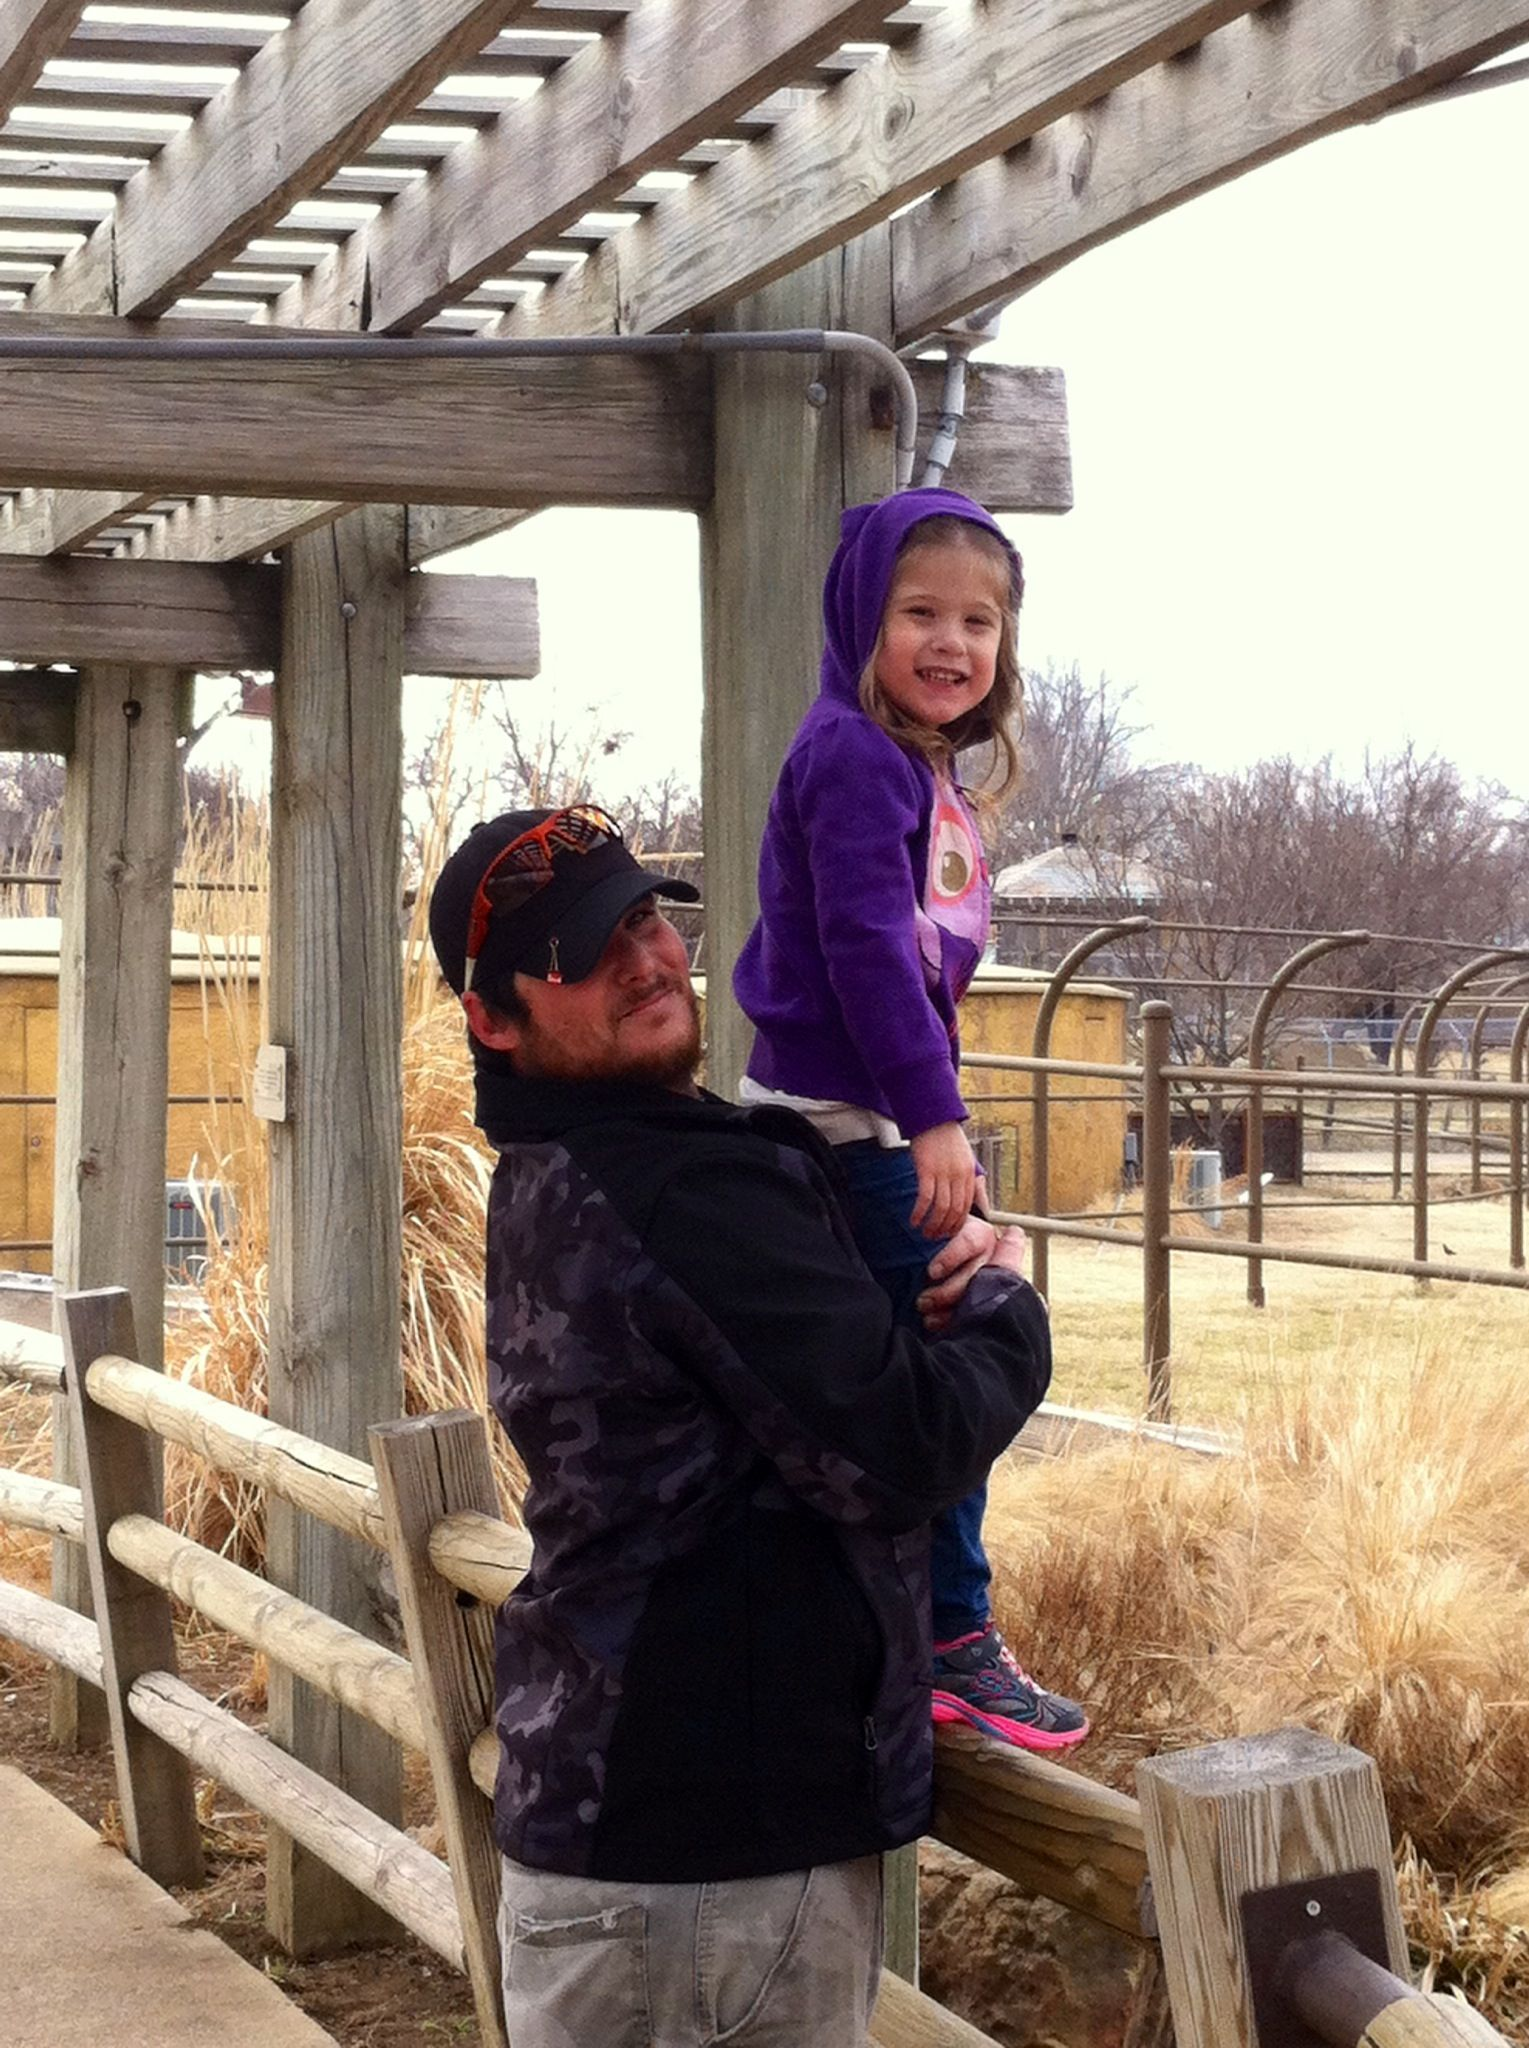 My awesome kiddo w/her dad @ the zoo.